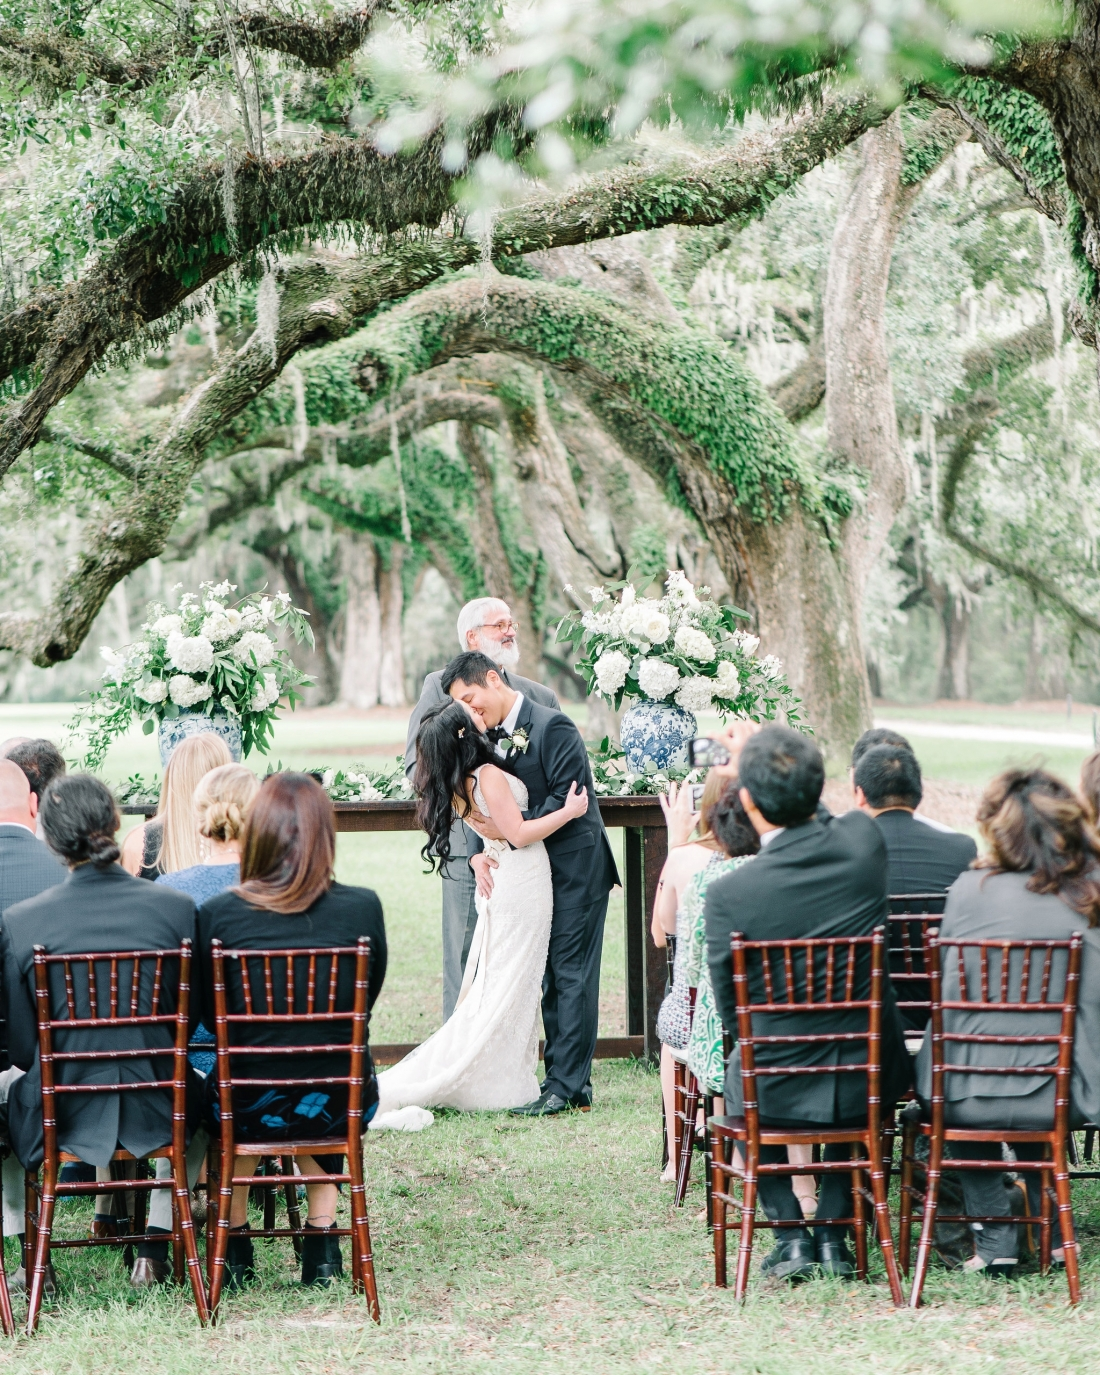 thomas-and-callas-boone-hall-plantation-wedding-by-charleston-wedding-photographers-aaron-and-jillian-photography-_0031